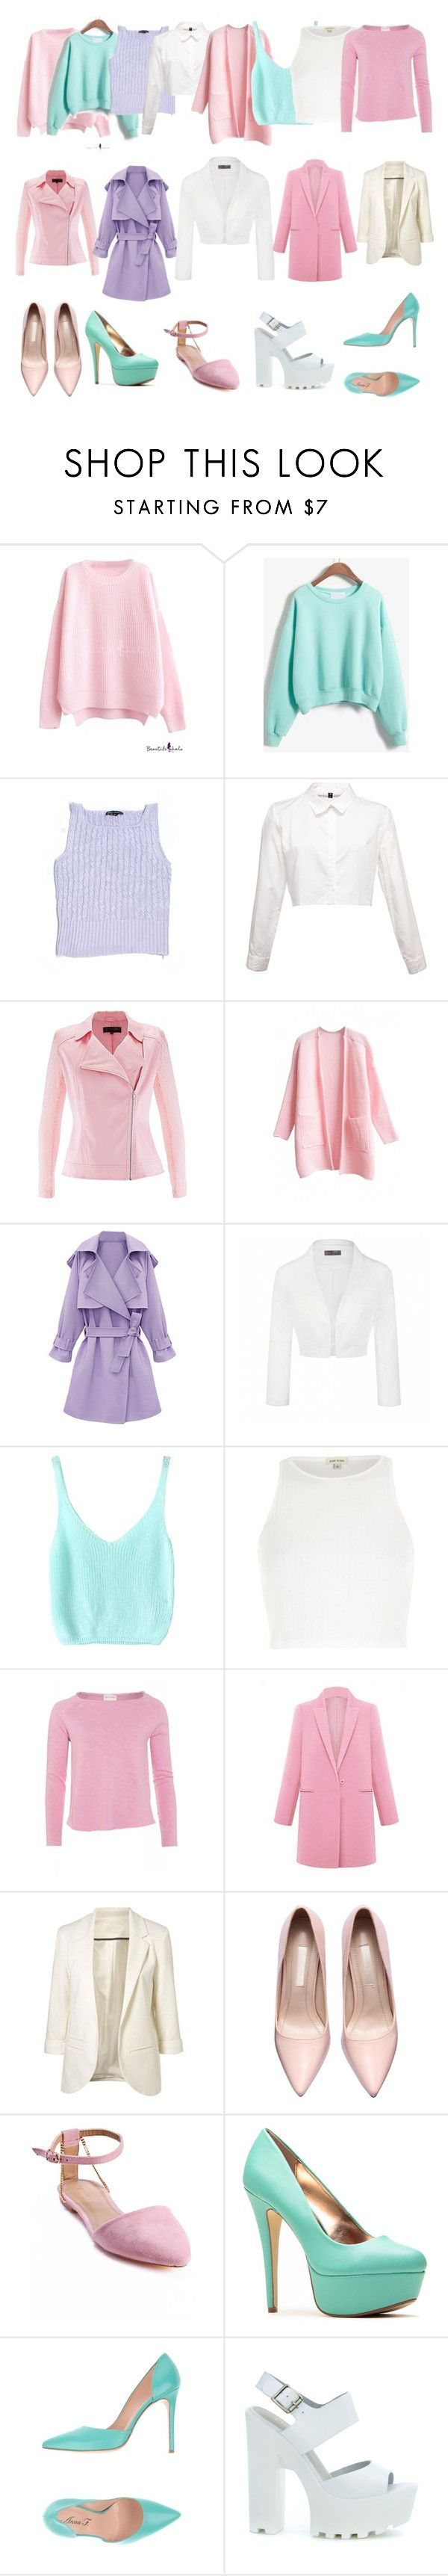 """""""Scream Queens Base Wardrobe"""" by pollypotter ❤ liked on Polyvore featuring Adrienne Vittadini, Ally Fashion, River Island, American Vintage, Sergio Bari, Anna F., Windsor Smith, women's clothing, women and female"""